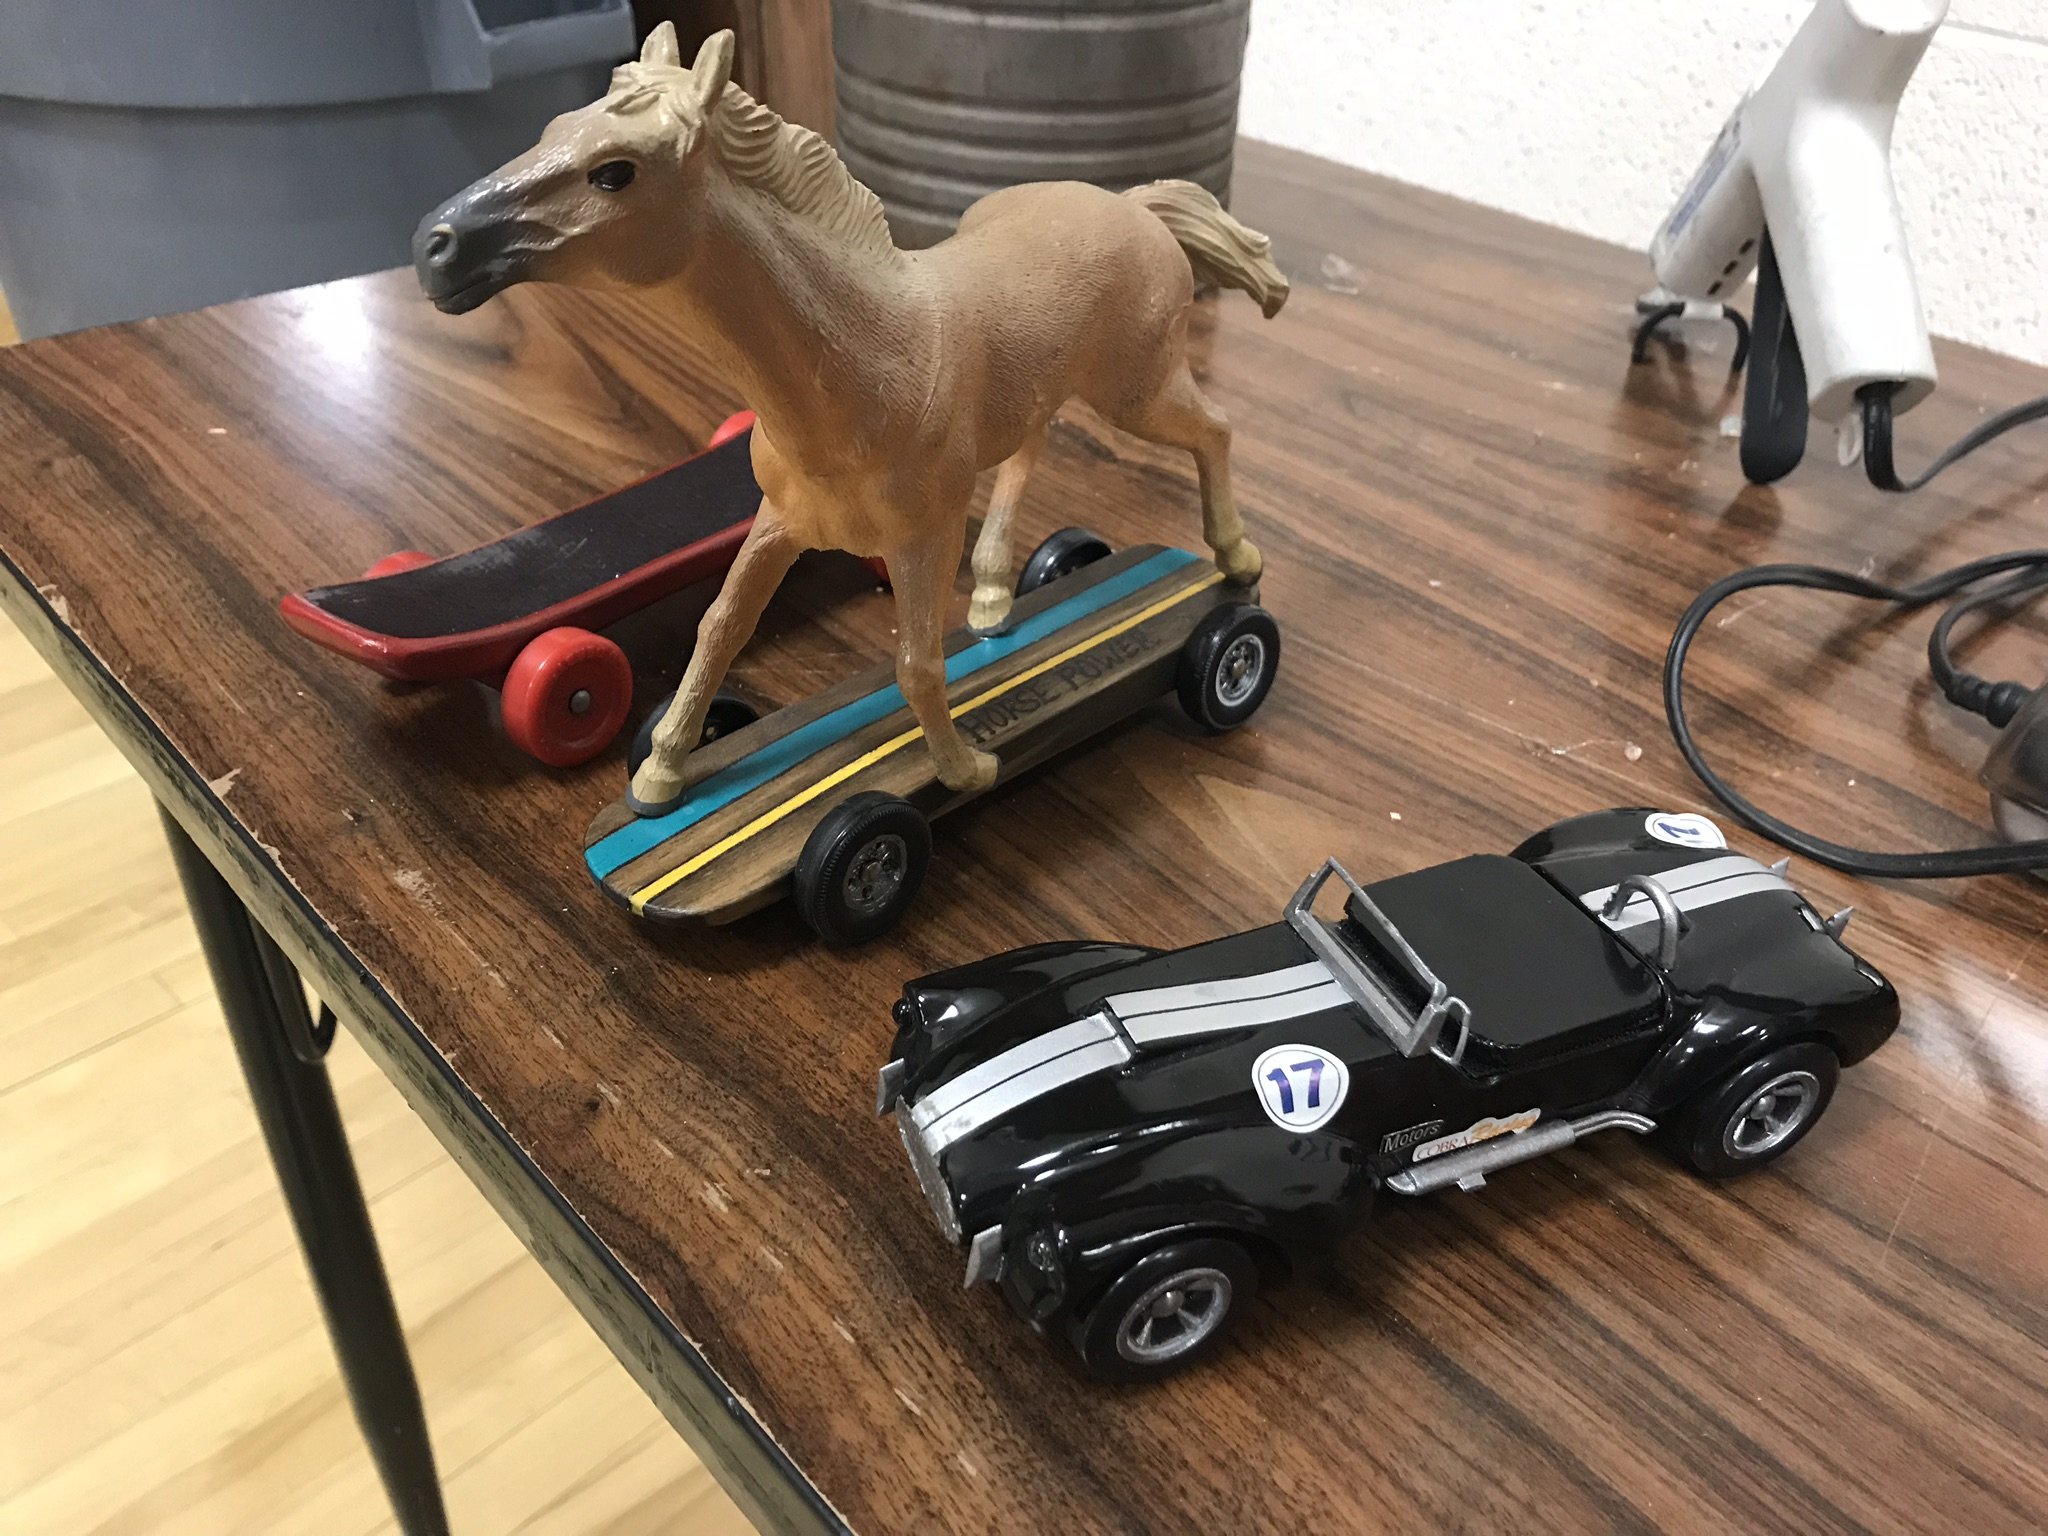 Skate board, horse power, and Cobra